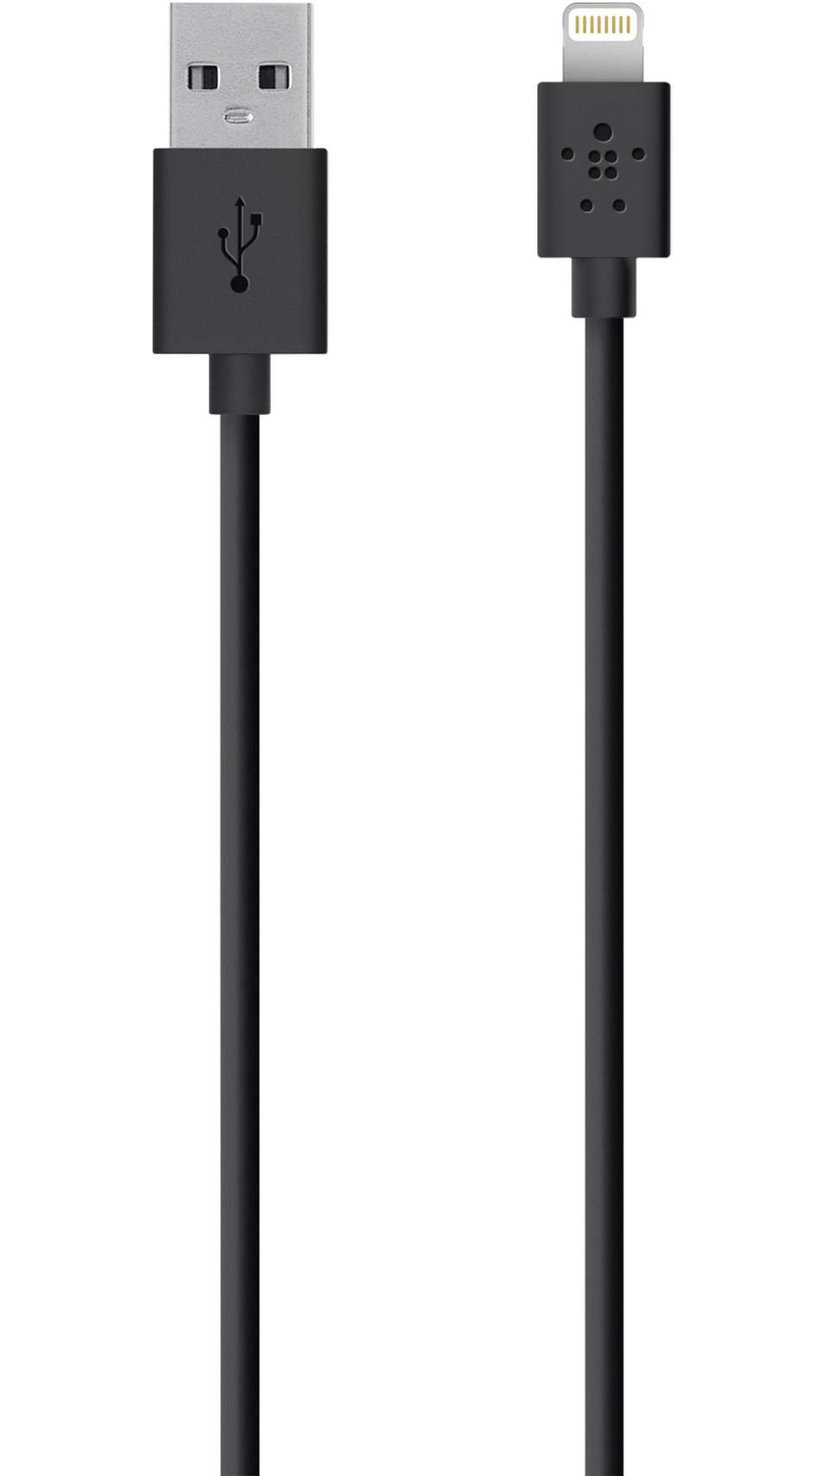 Belkin MIXIT Lightning to USB ChargeSync